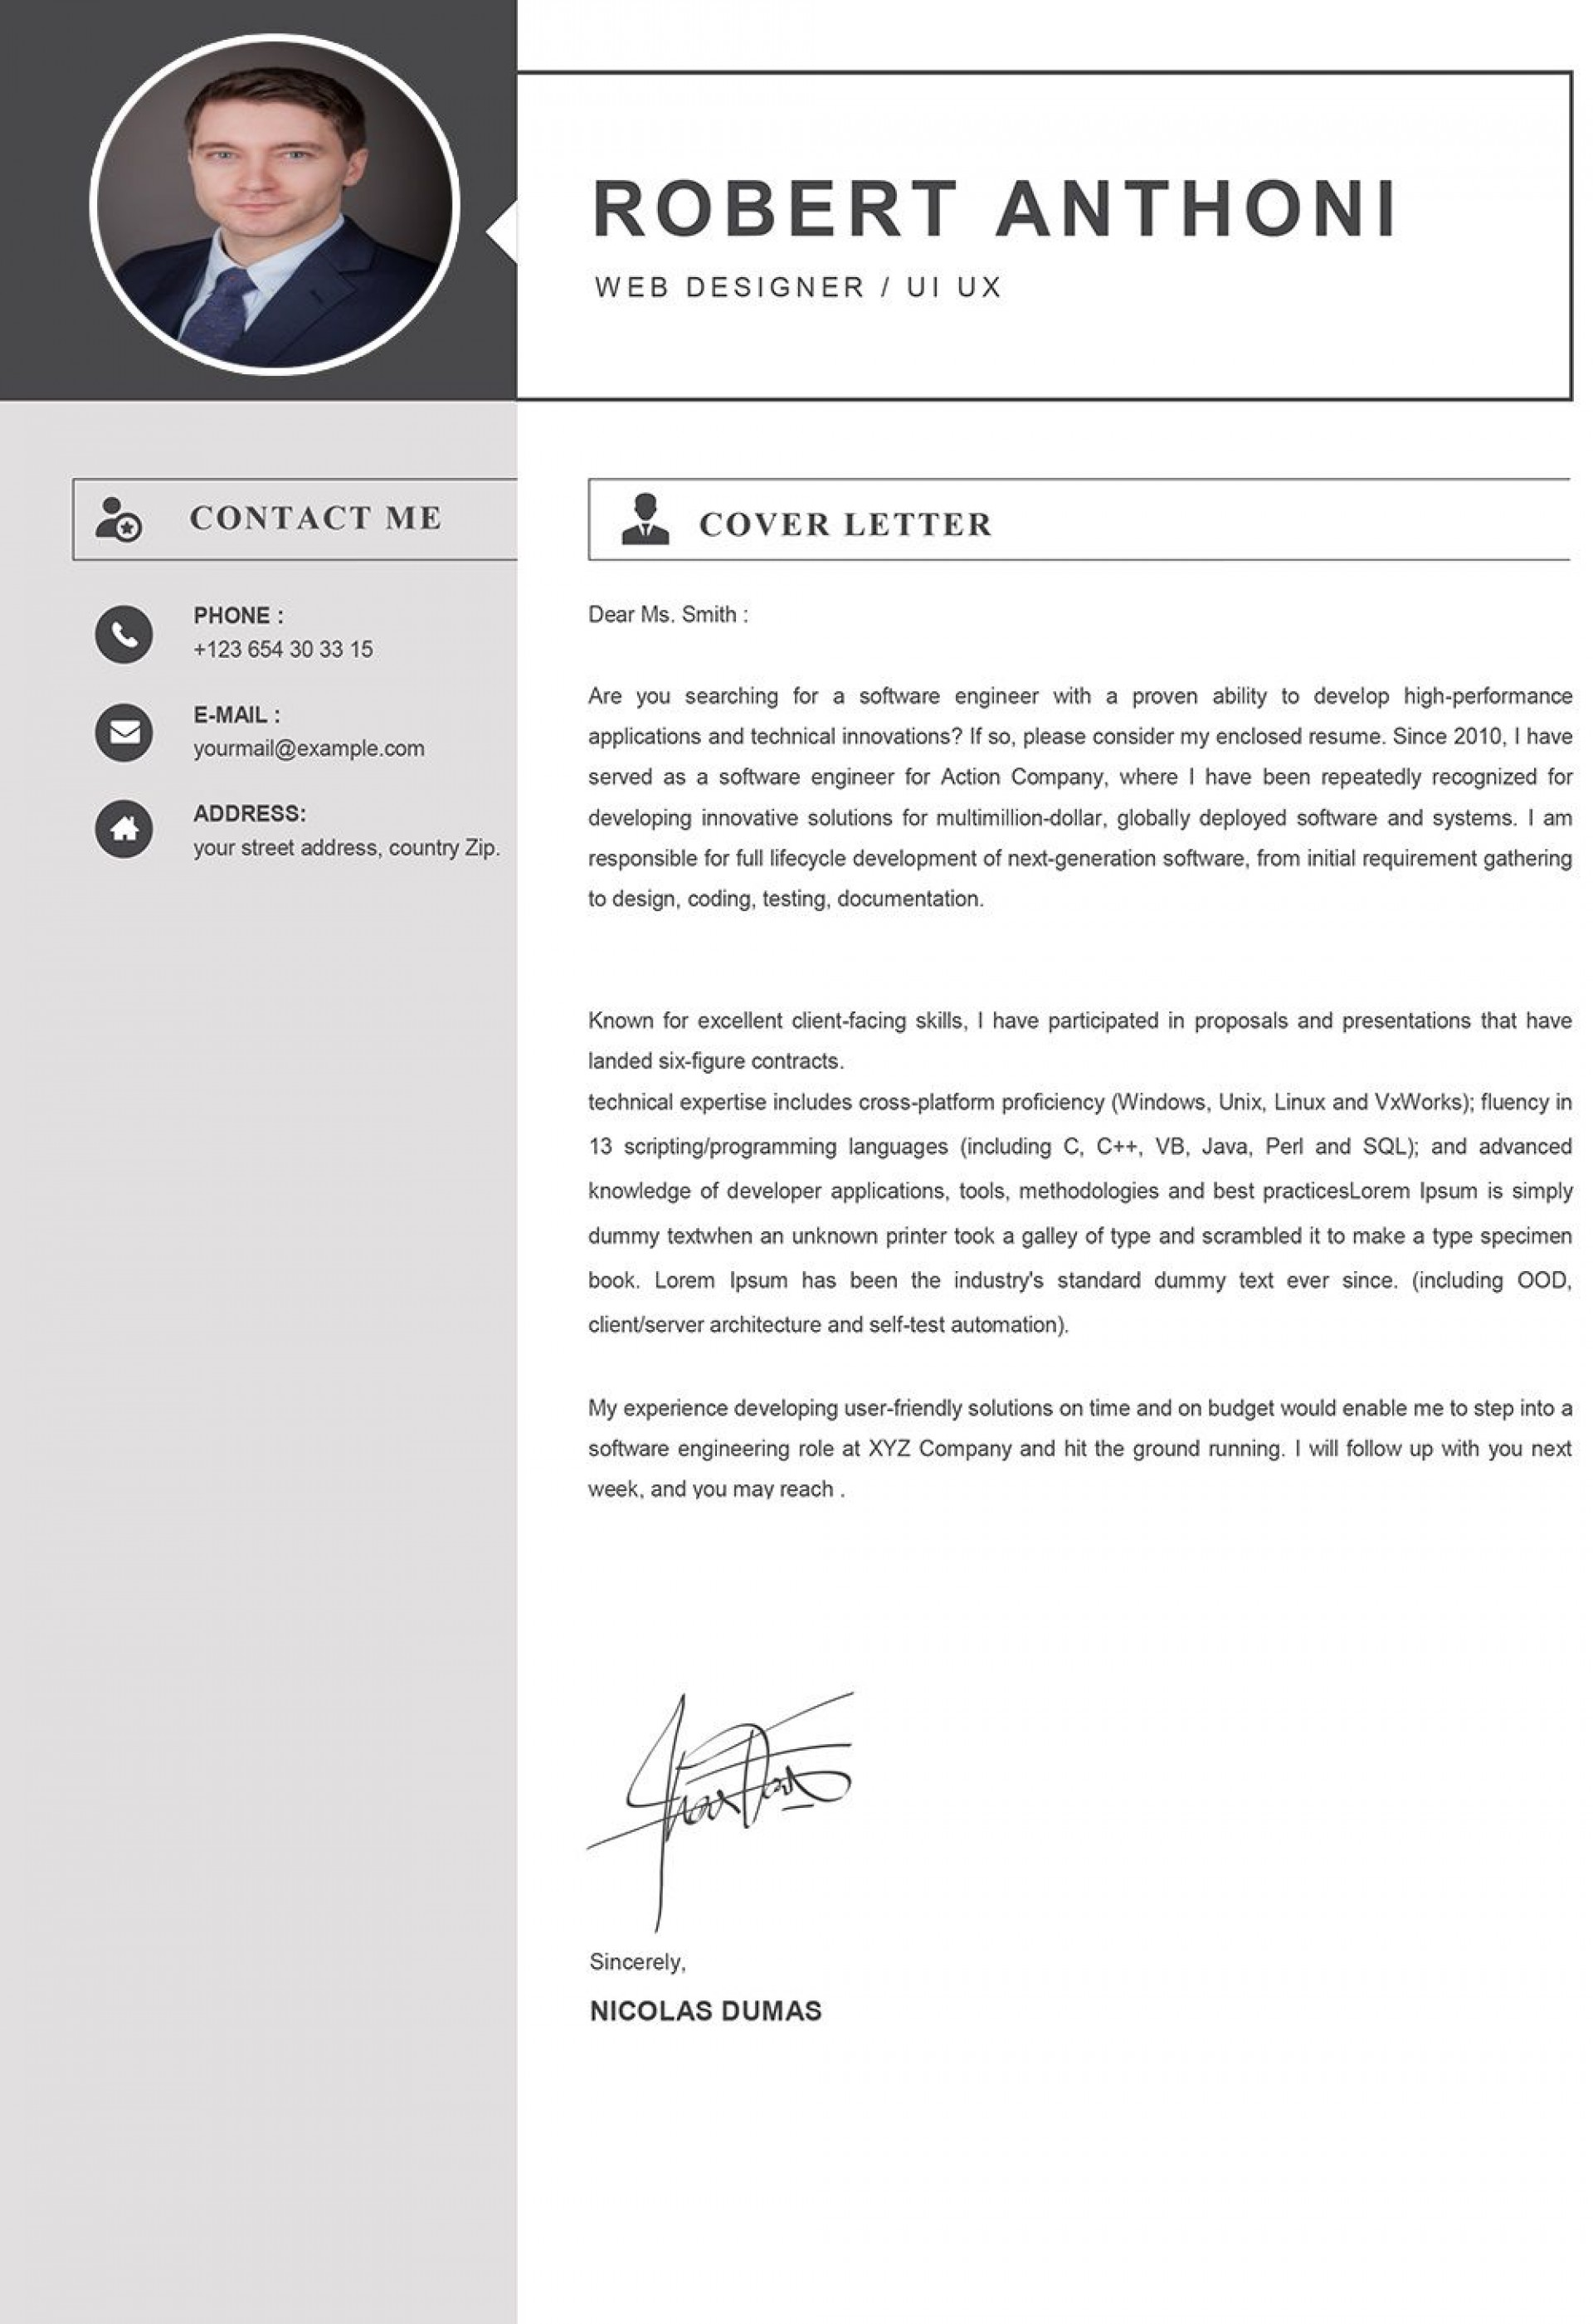 003 Simple Window Resume Cover Letter Template High Resolution  Templates1920